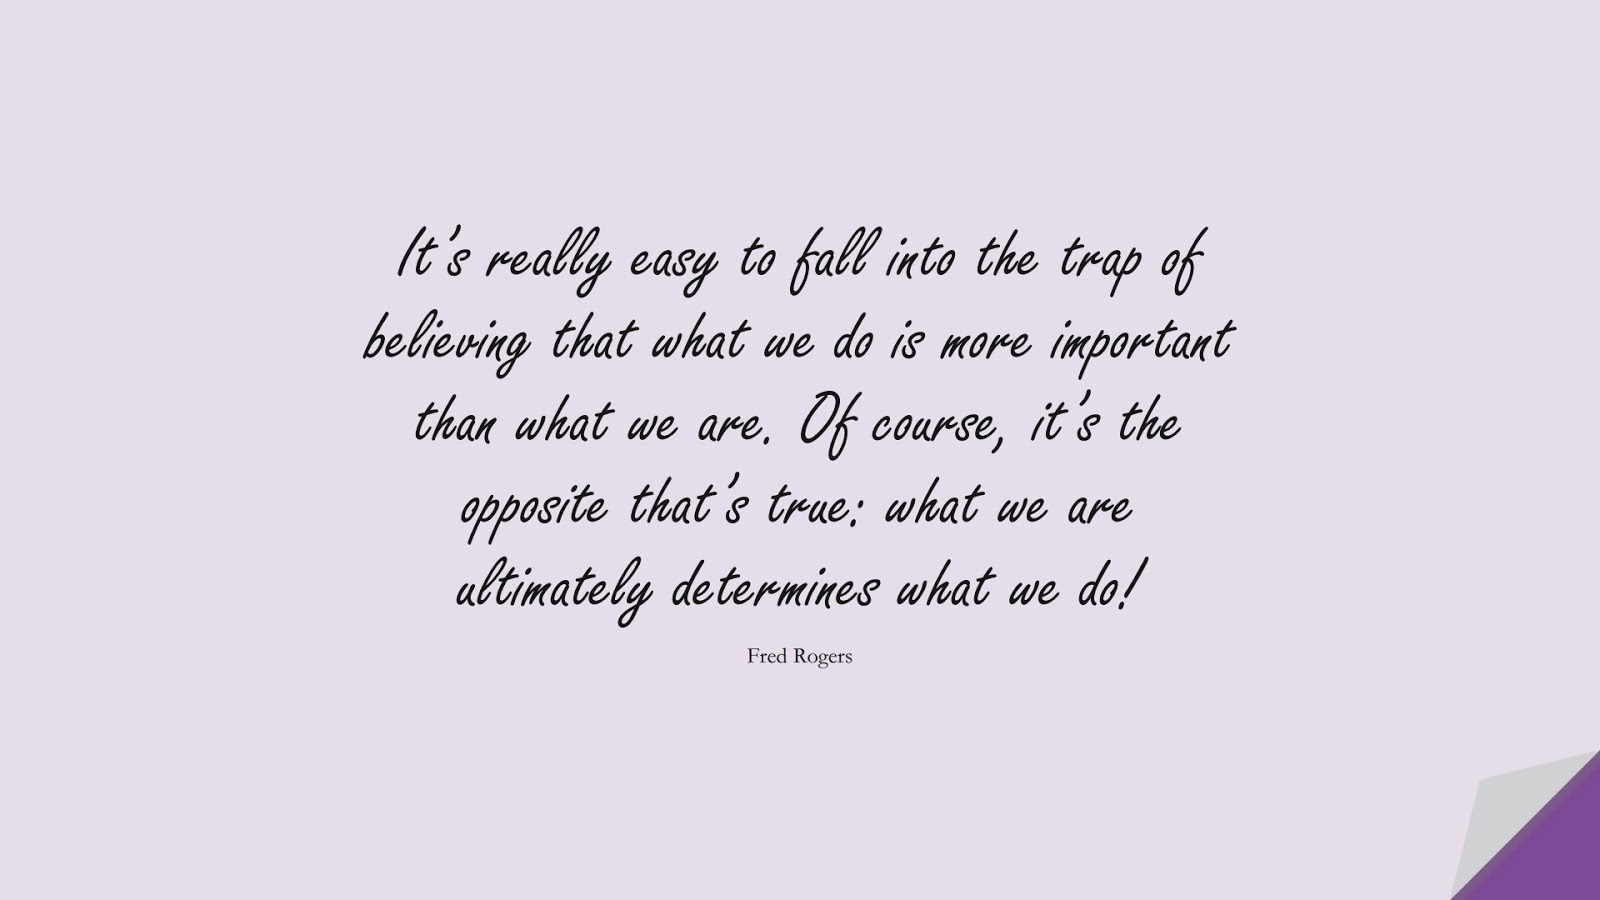 It's really easy to fall into the trap of believing that what we do is more important than what we are. Of course, it's the opposite that's true: what we are ultimately determines what we do! (Fred Rogers);  #CharacterQuotes